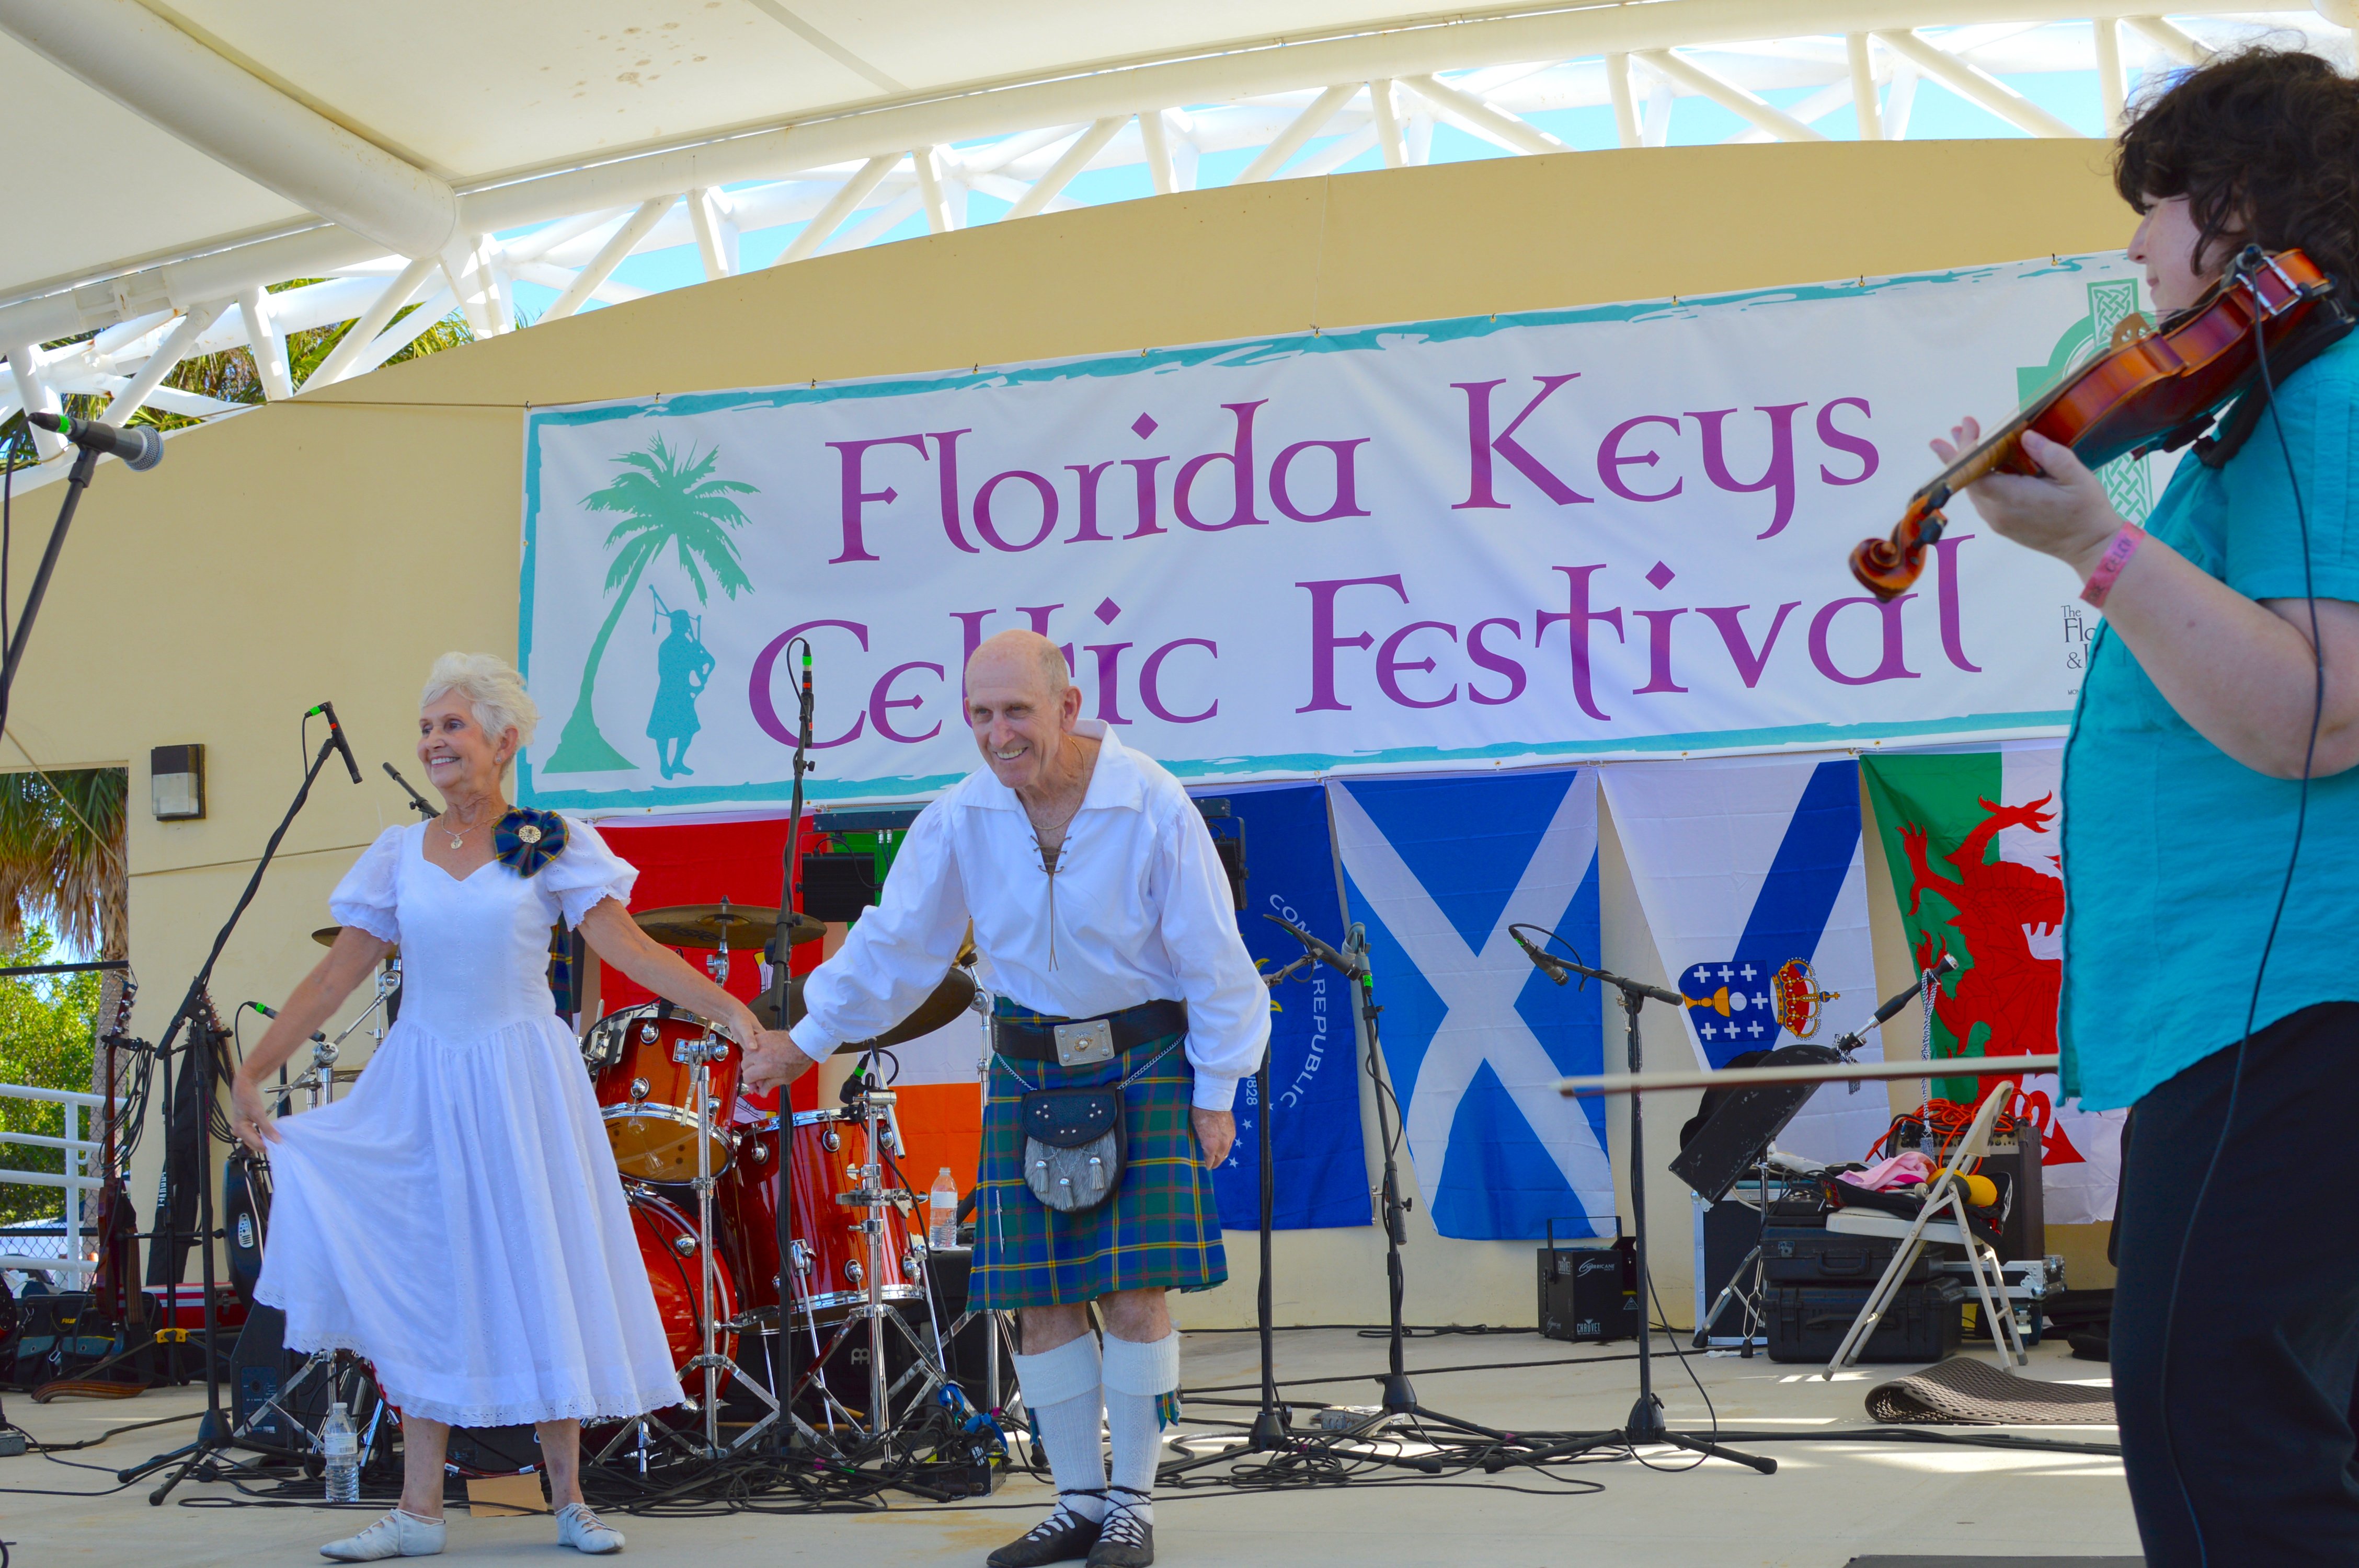 Florida Keys Celtic Festival Returns to Marathon Jan. 5-7